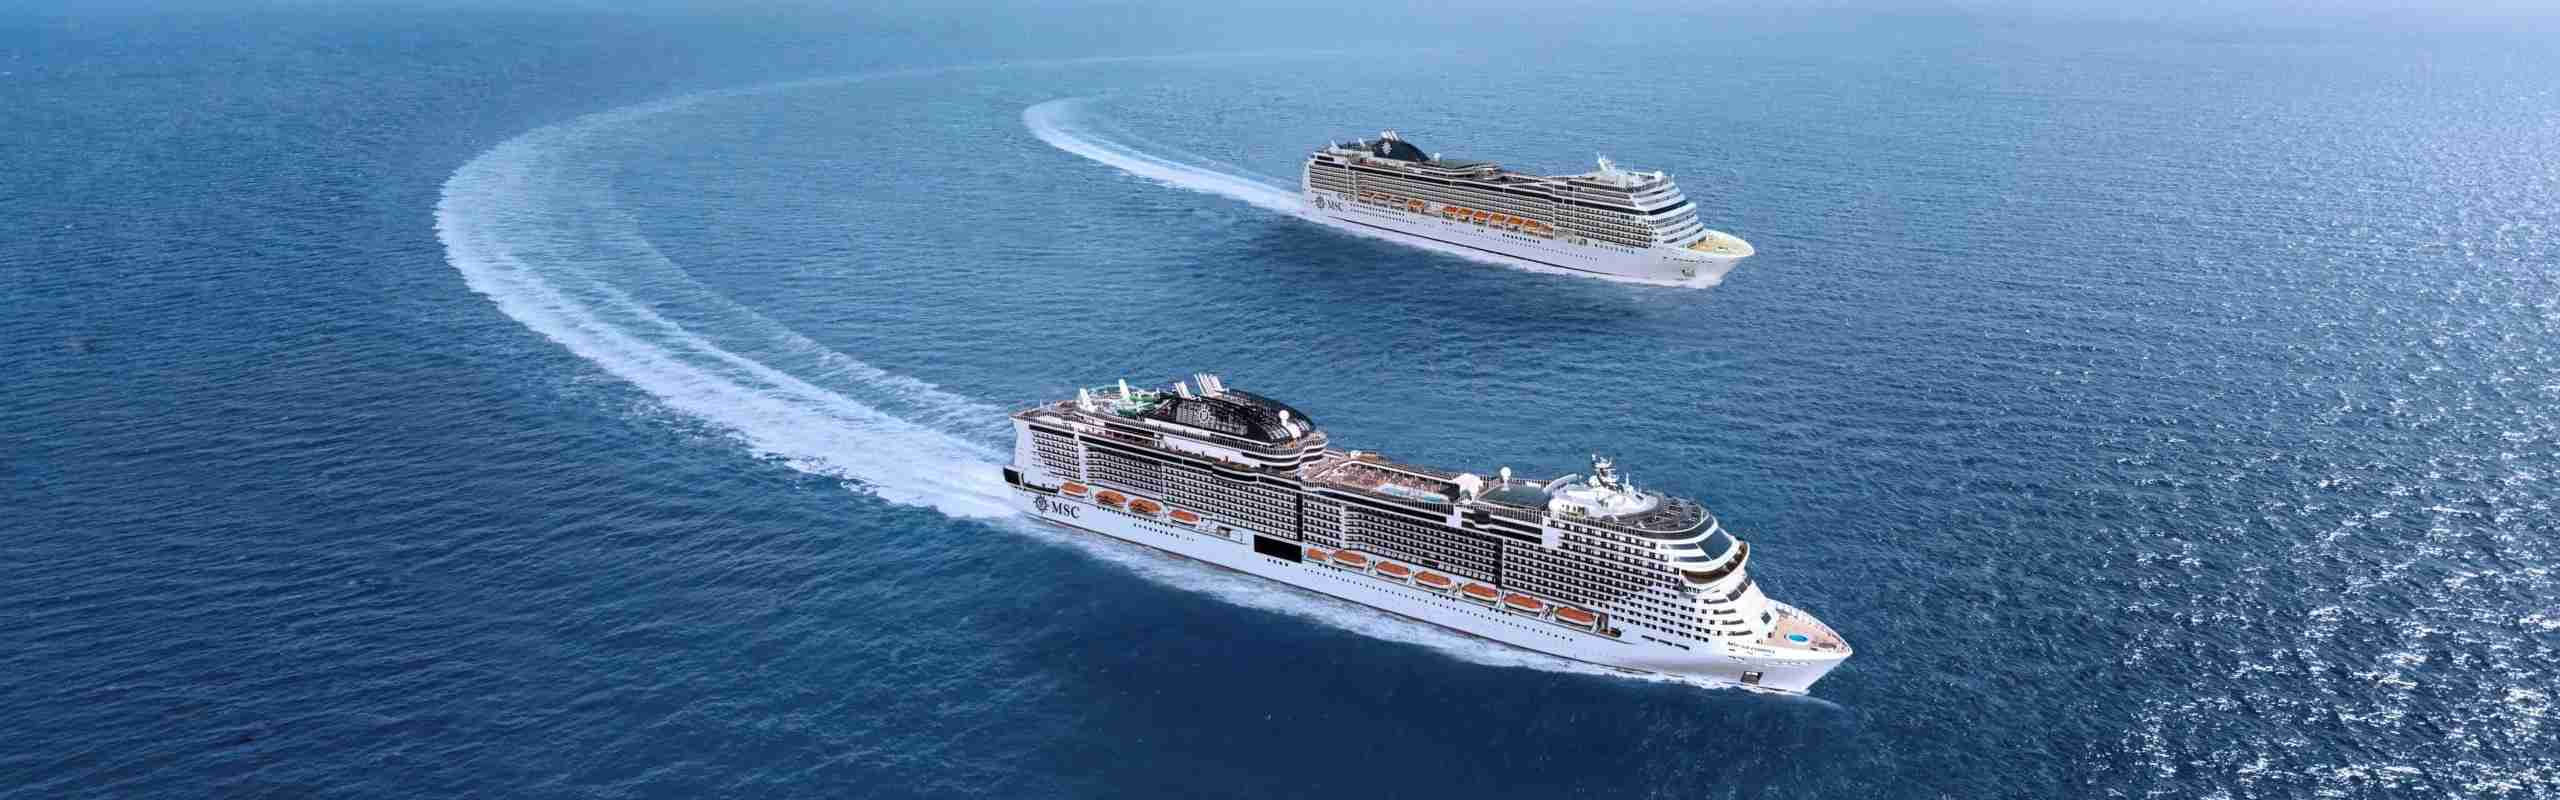 MSC Bellissima and MSC Magnifica